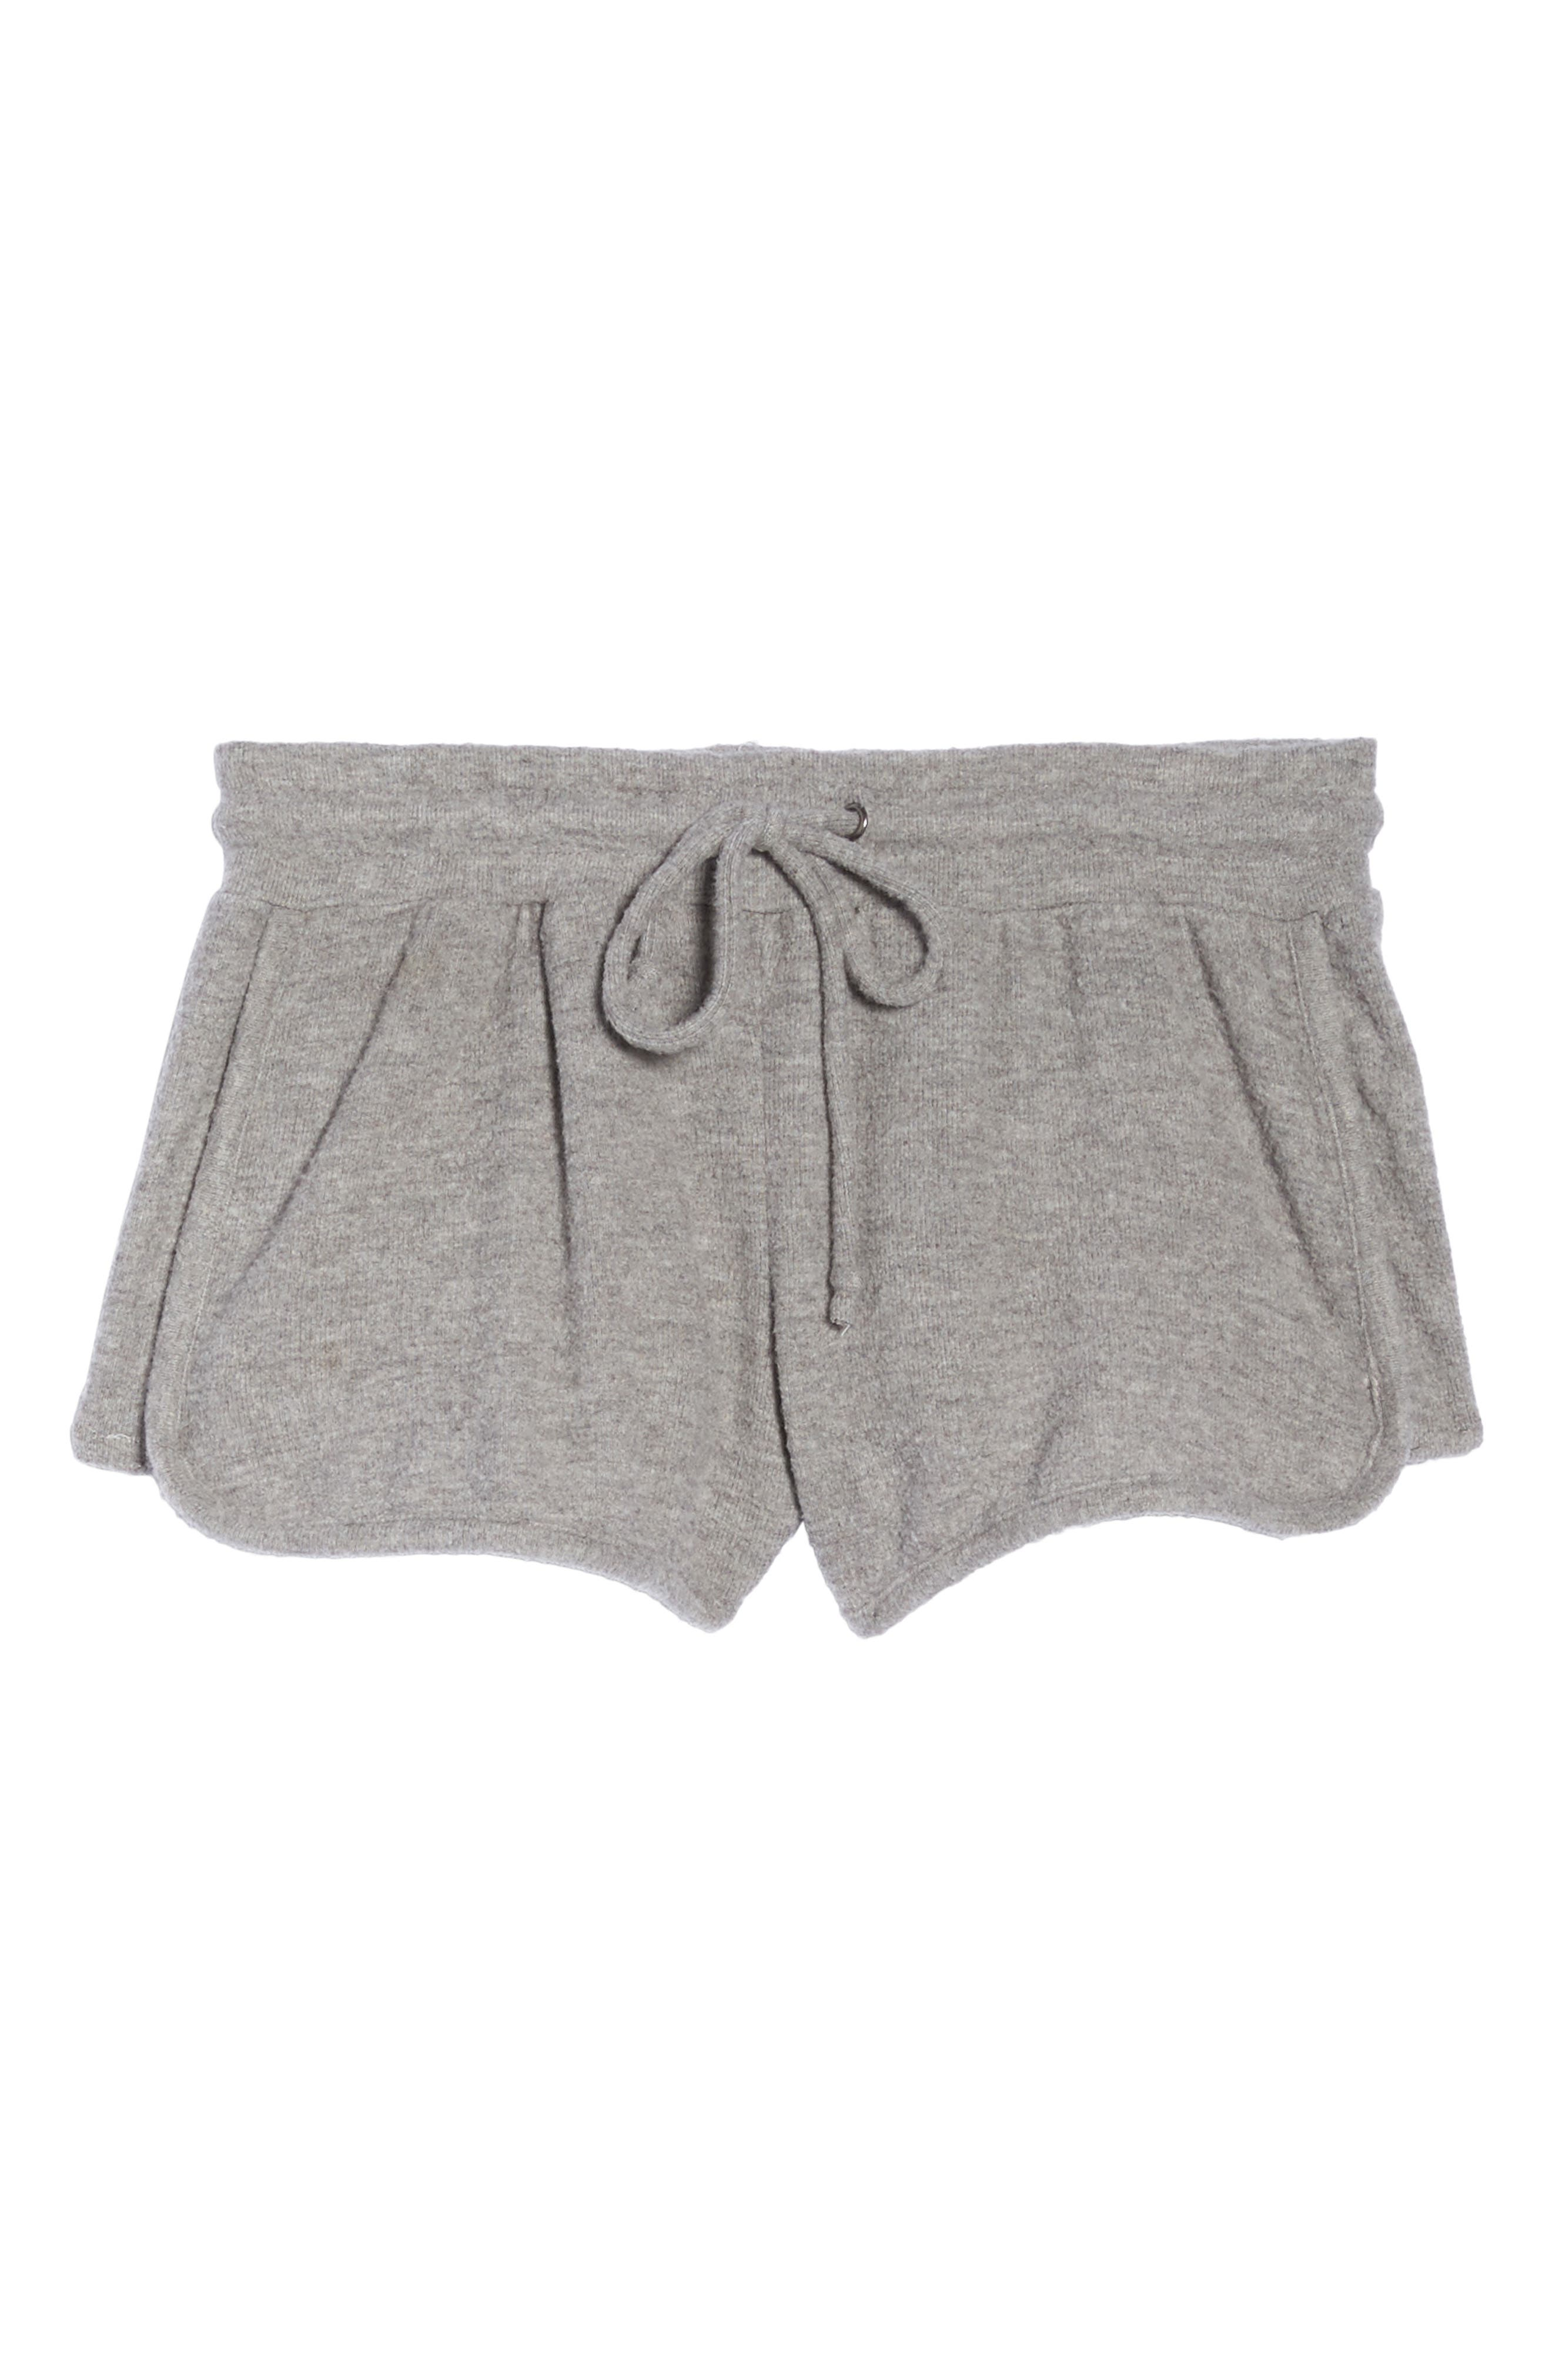 Love Shorts,                             Alternate thumbnail 4, color,                             Heather Grey